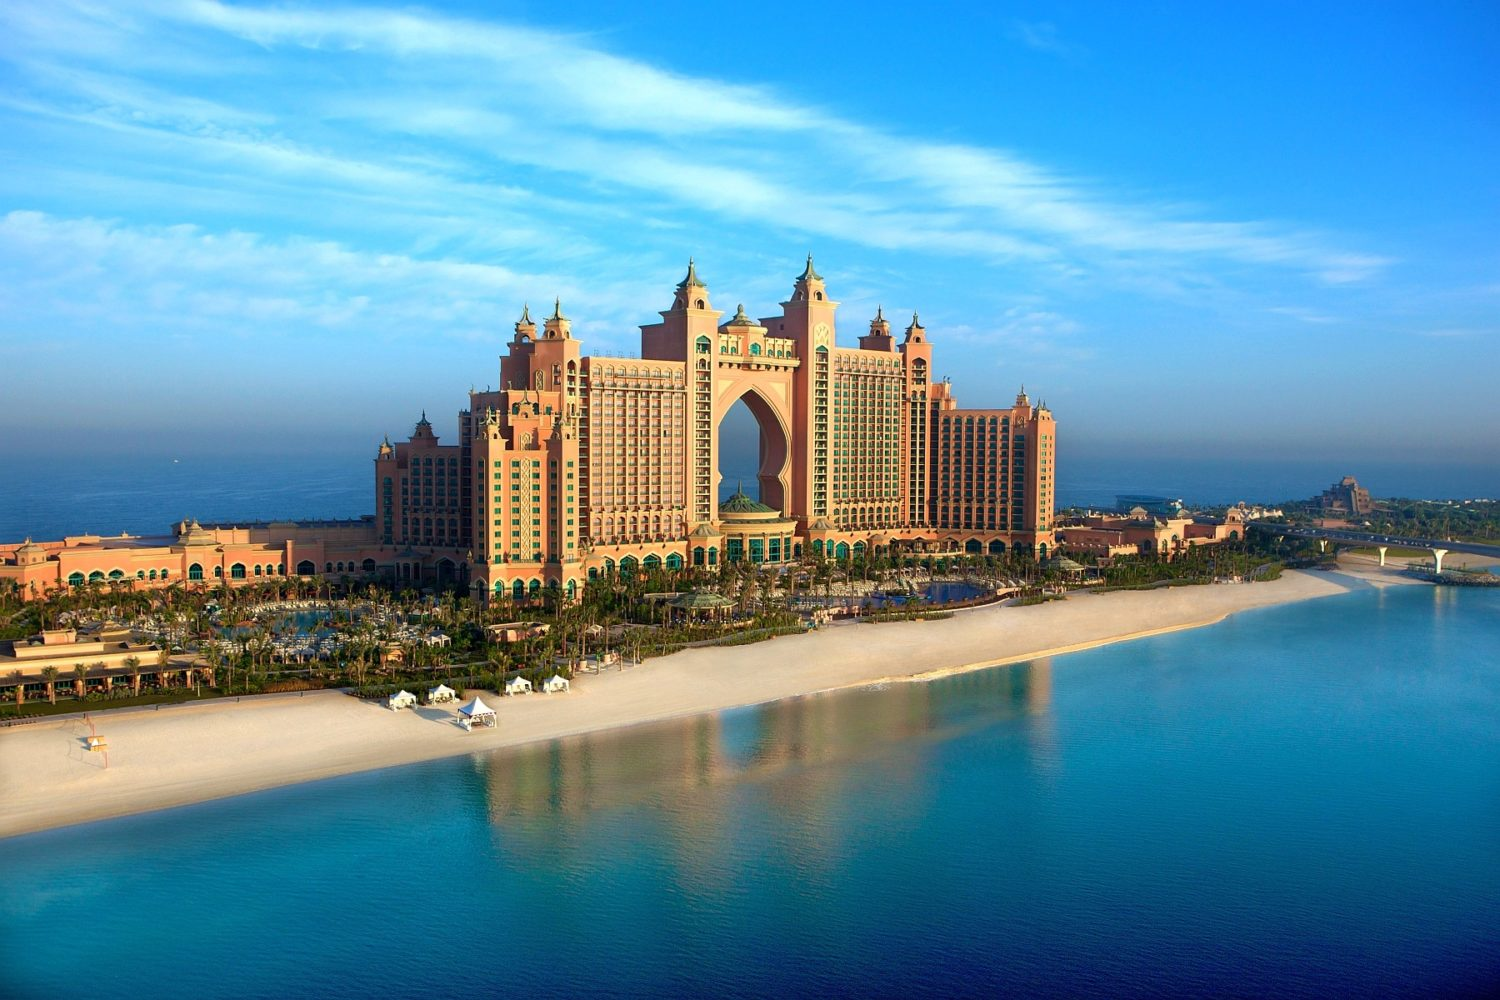 Atlantis Hotel Dubai Palma Beautiful Atlantis Hotel HDR Wallpaper